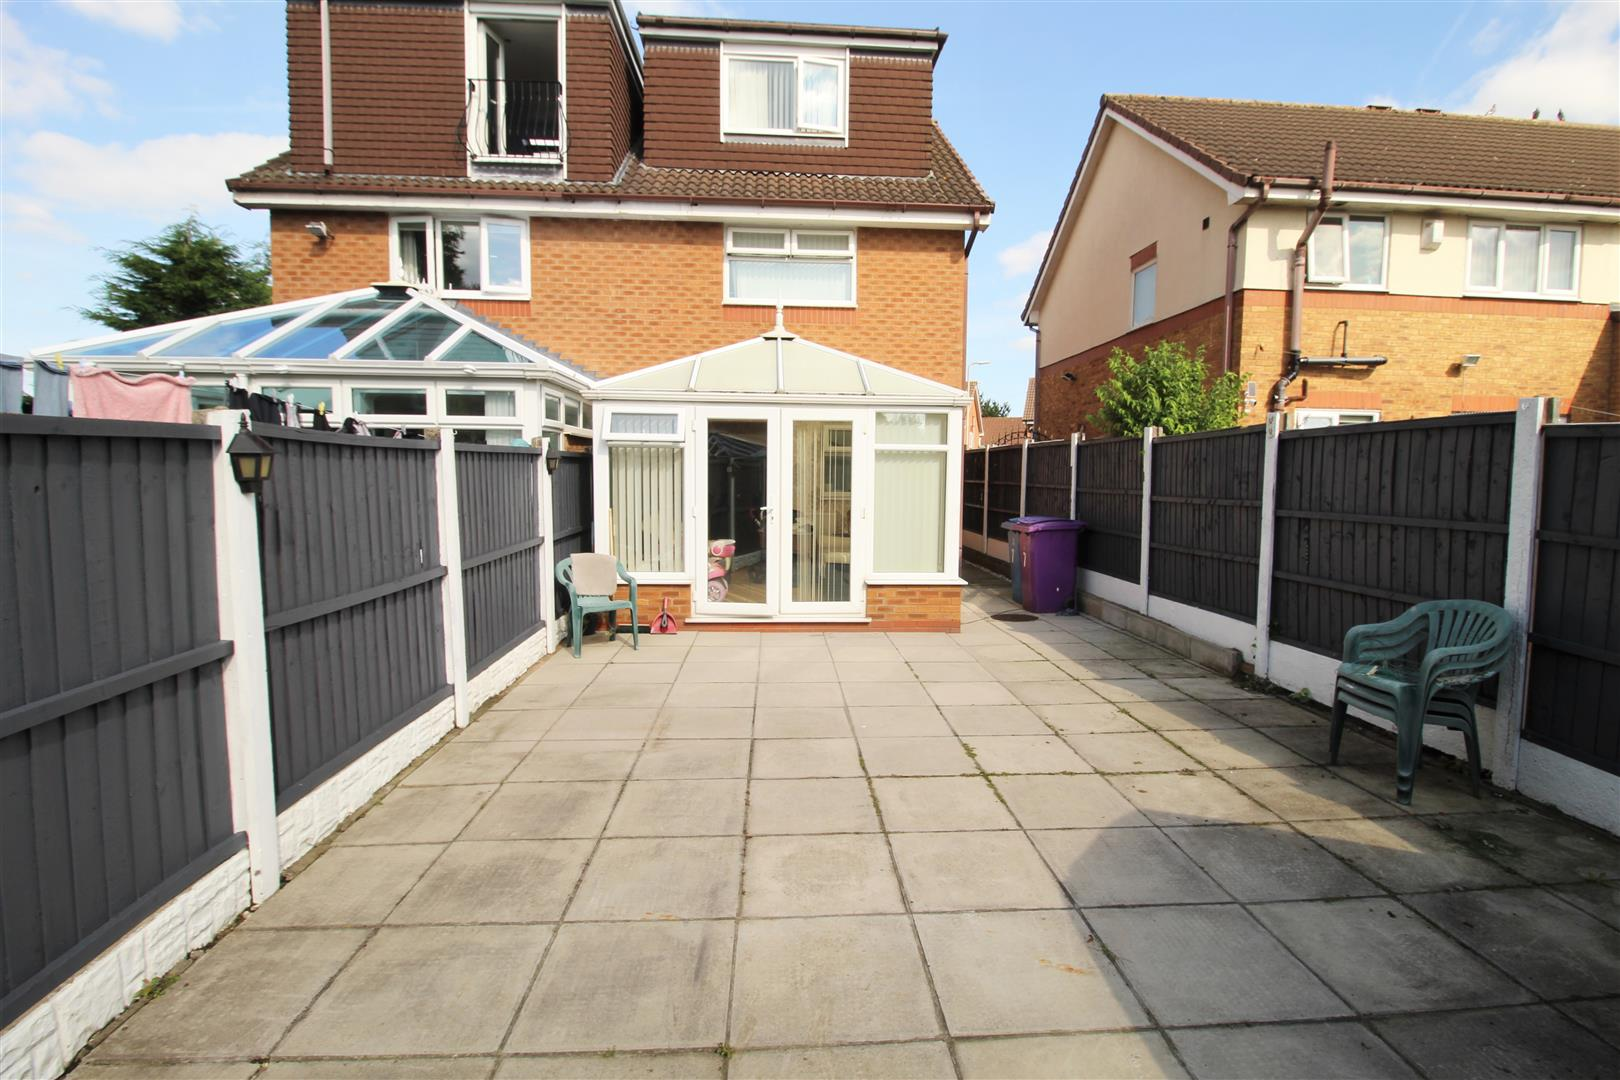 3 Bedrooms, House - Semi-Detached, Fistral Close, Fazakerley, Liverpool